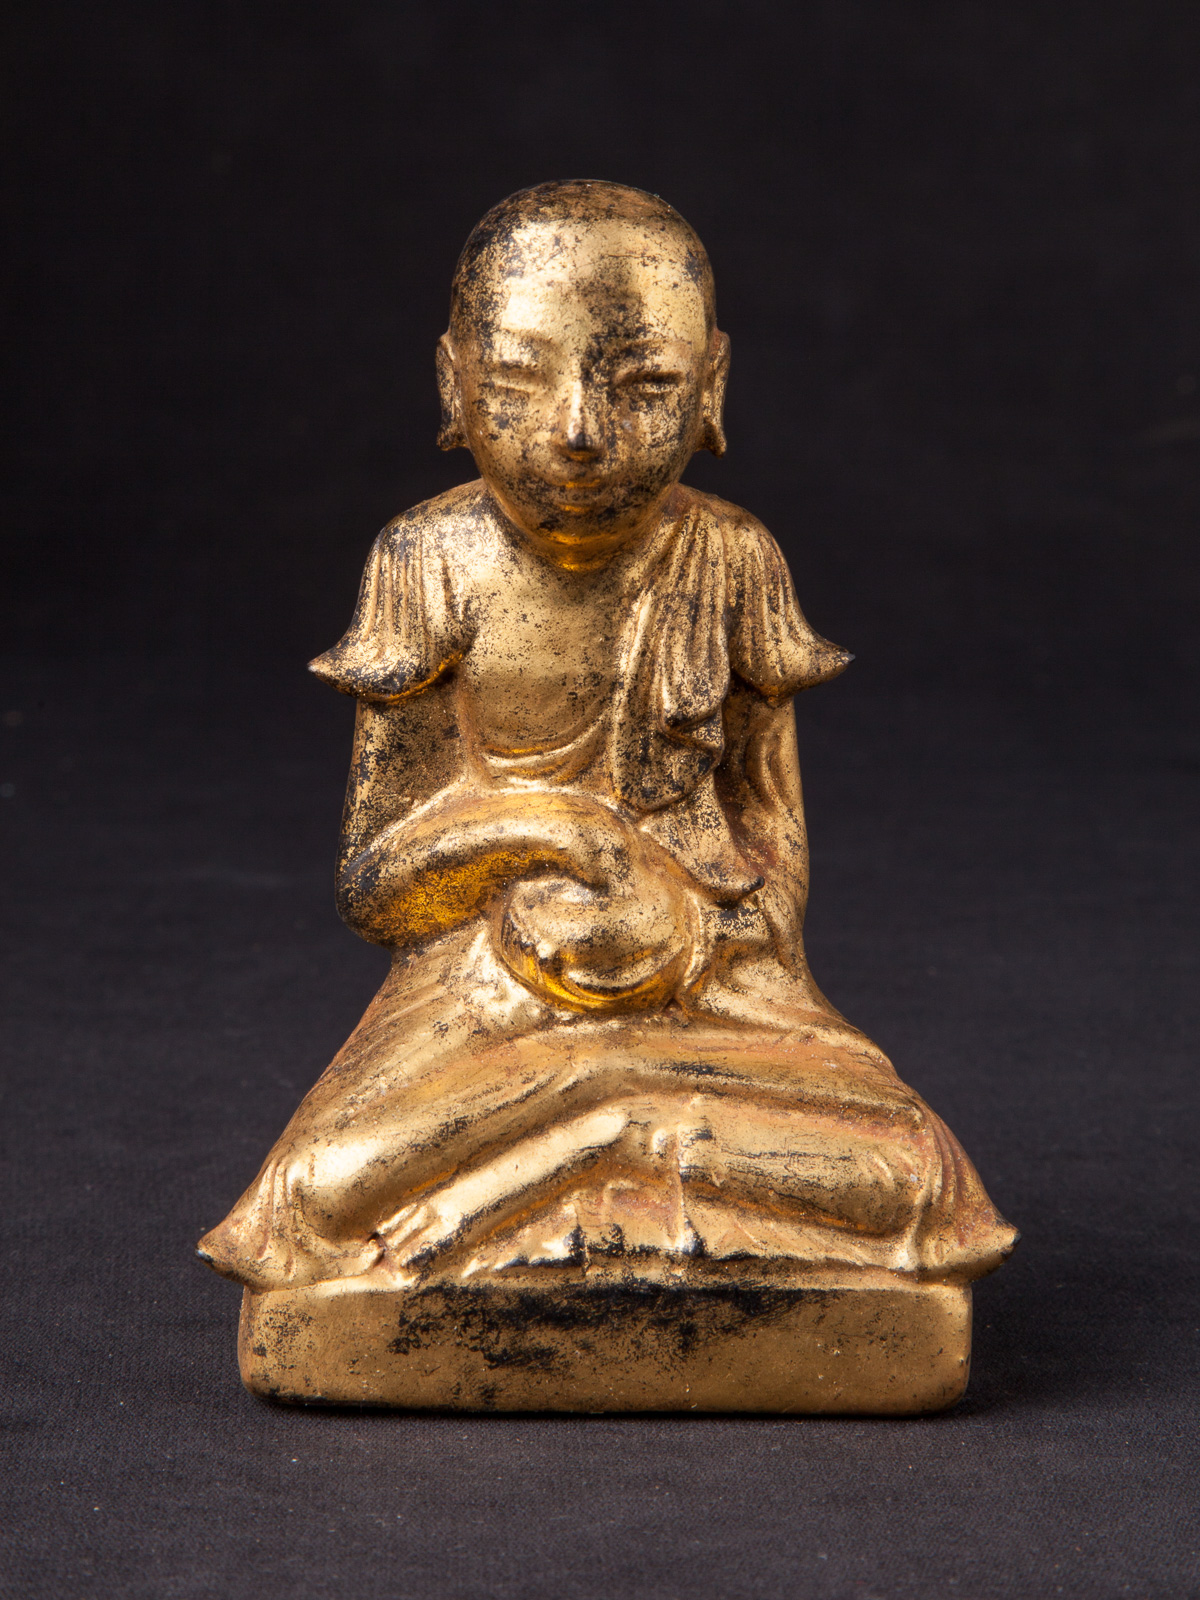 Antique Burmese monk statue from Burma made from lacquer